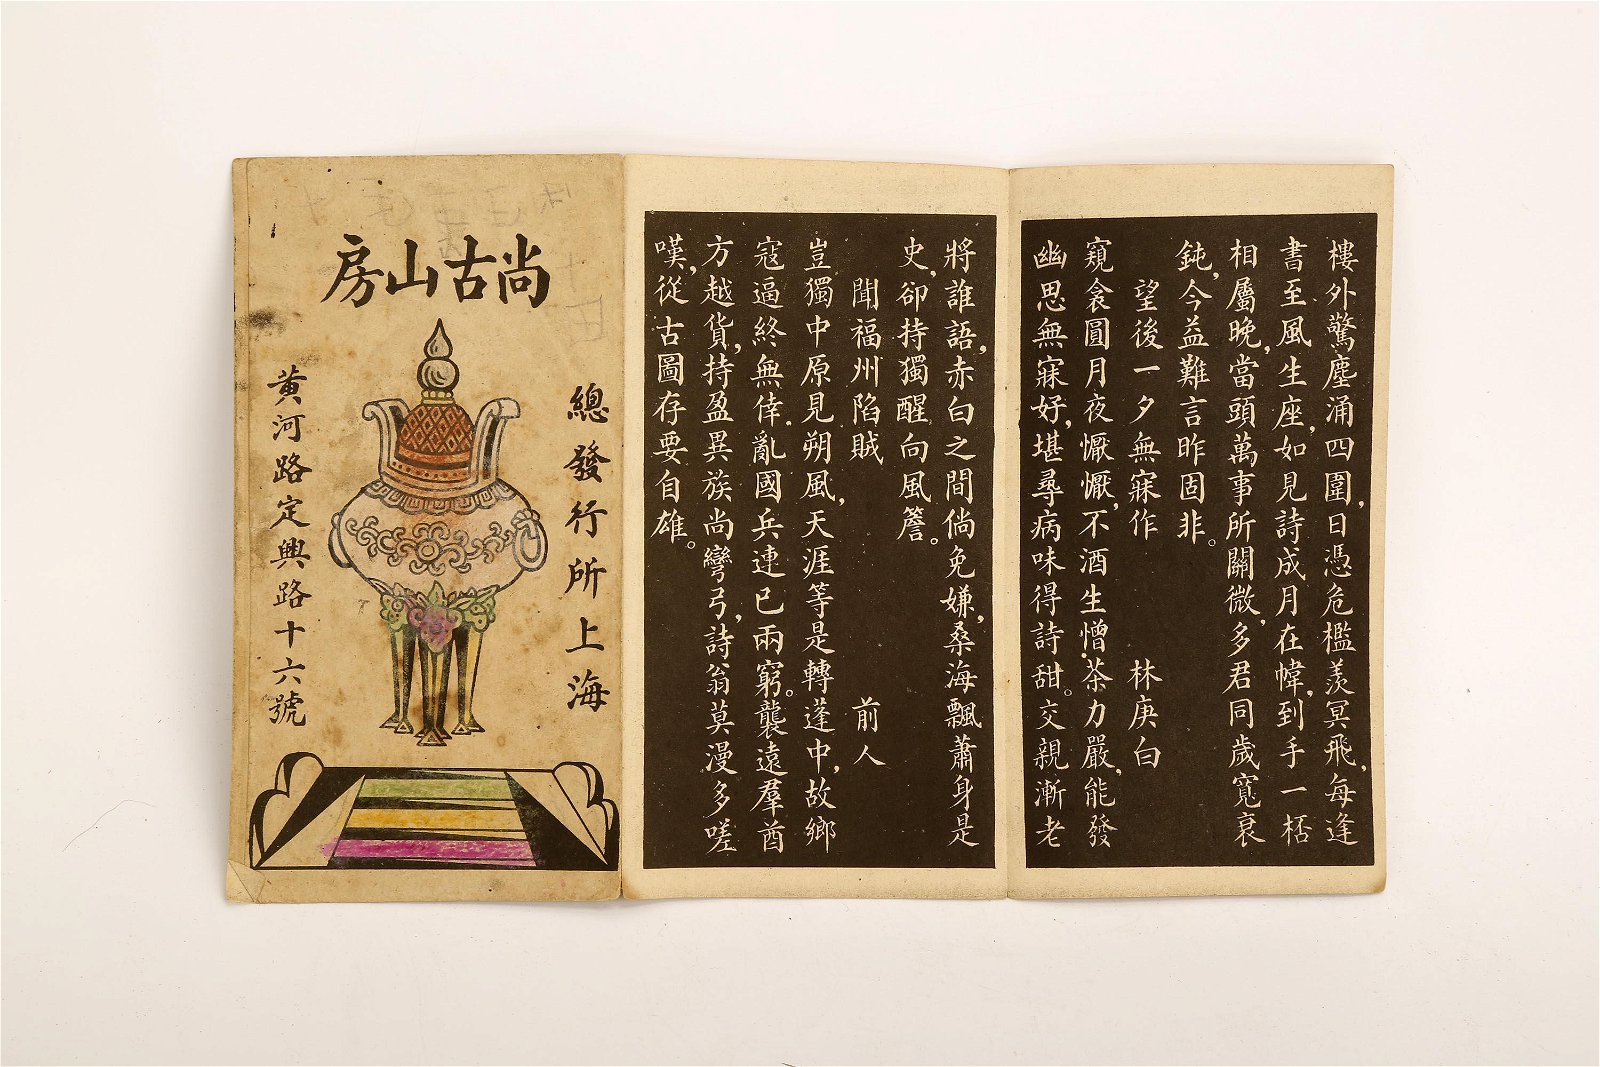 A REPUBLIC OF CHINA ENGRAVED WOOD BLOCK PRINTING PACK